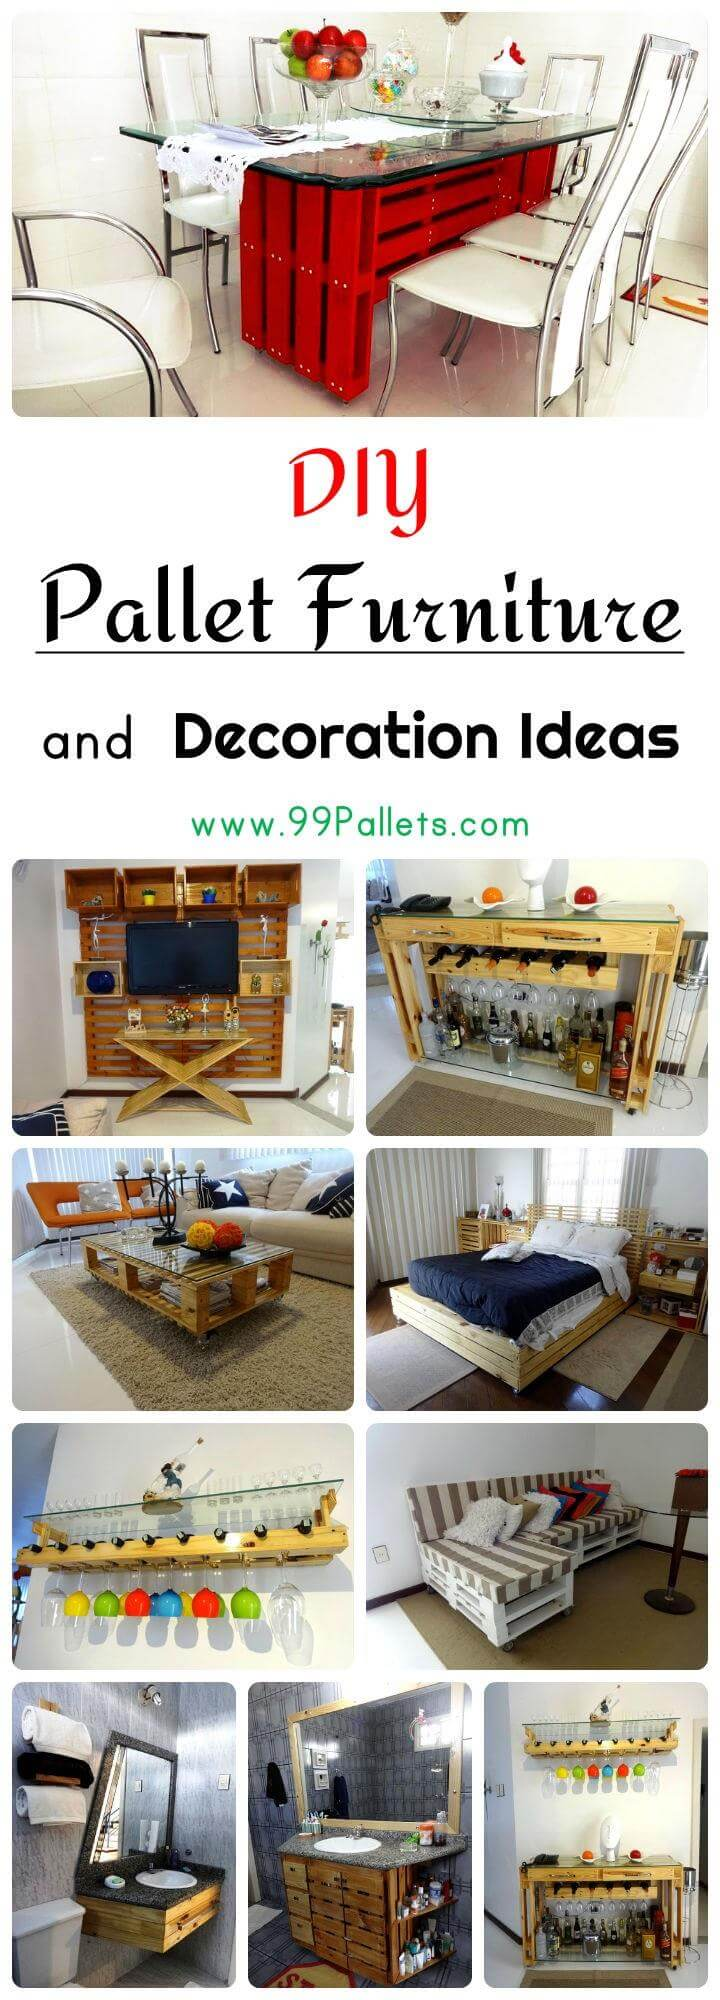 DIY Pallet Furniture and Decoration Ideas